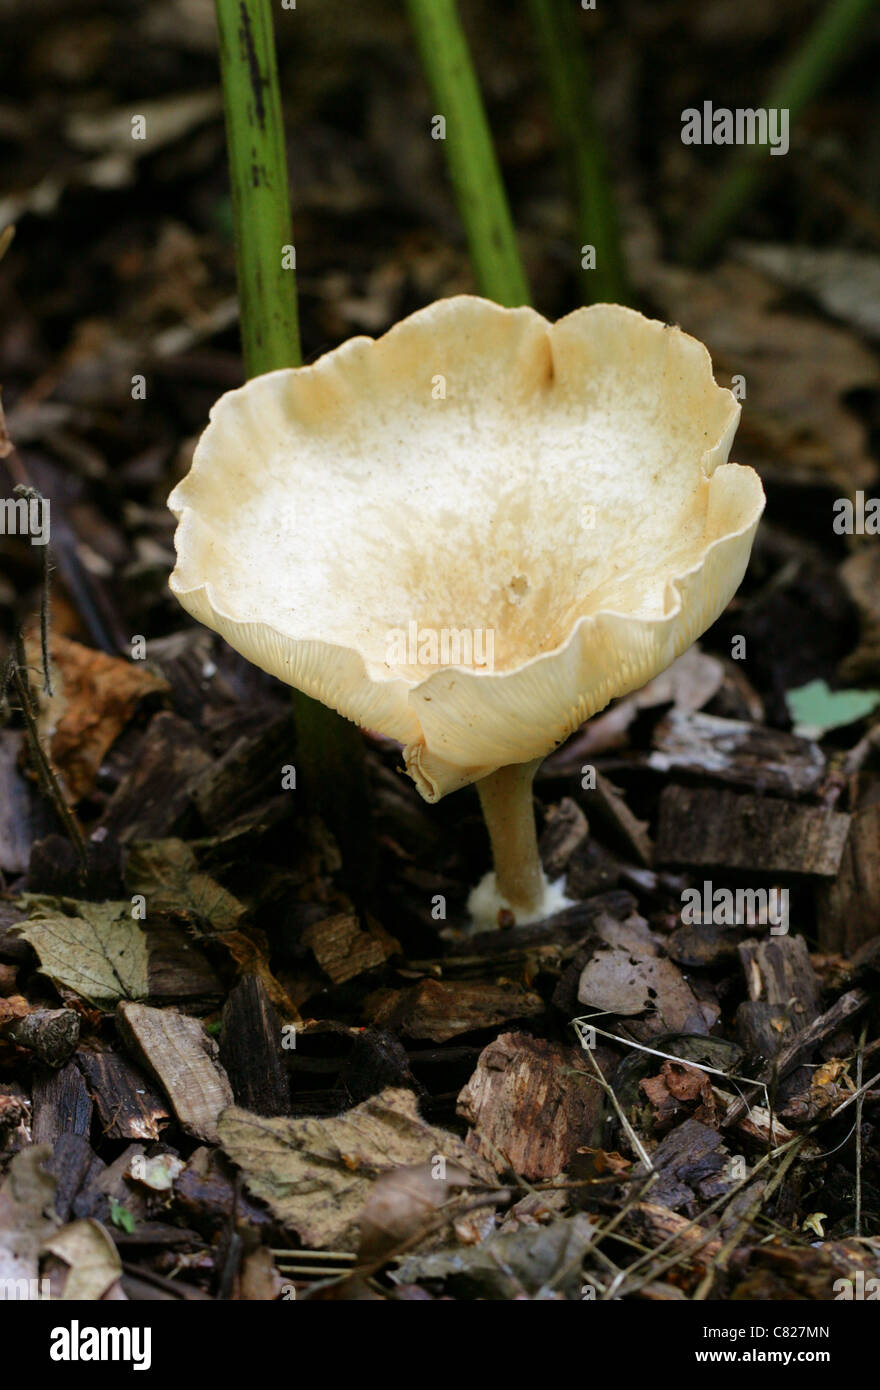 Common Funnel Fungus, Clitocybe gibba, Tricholomataceae. - Stock Image